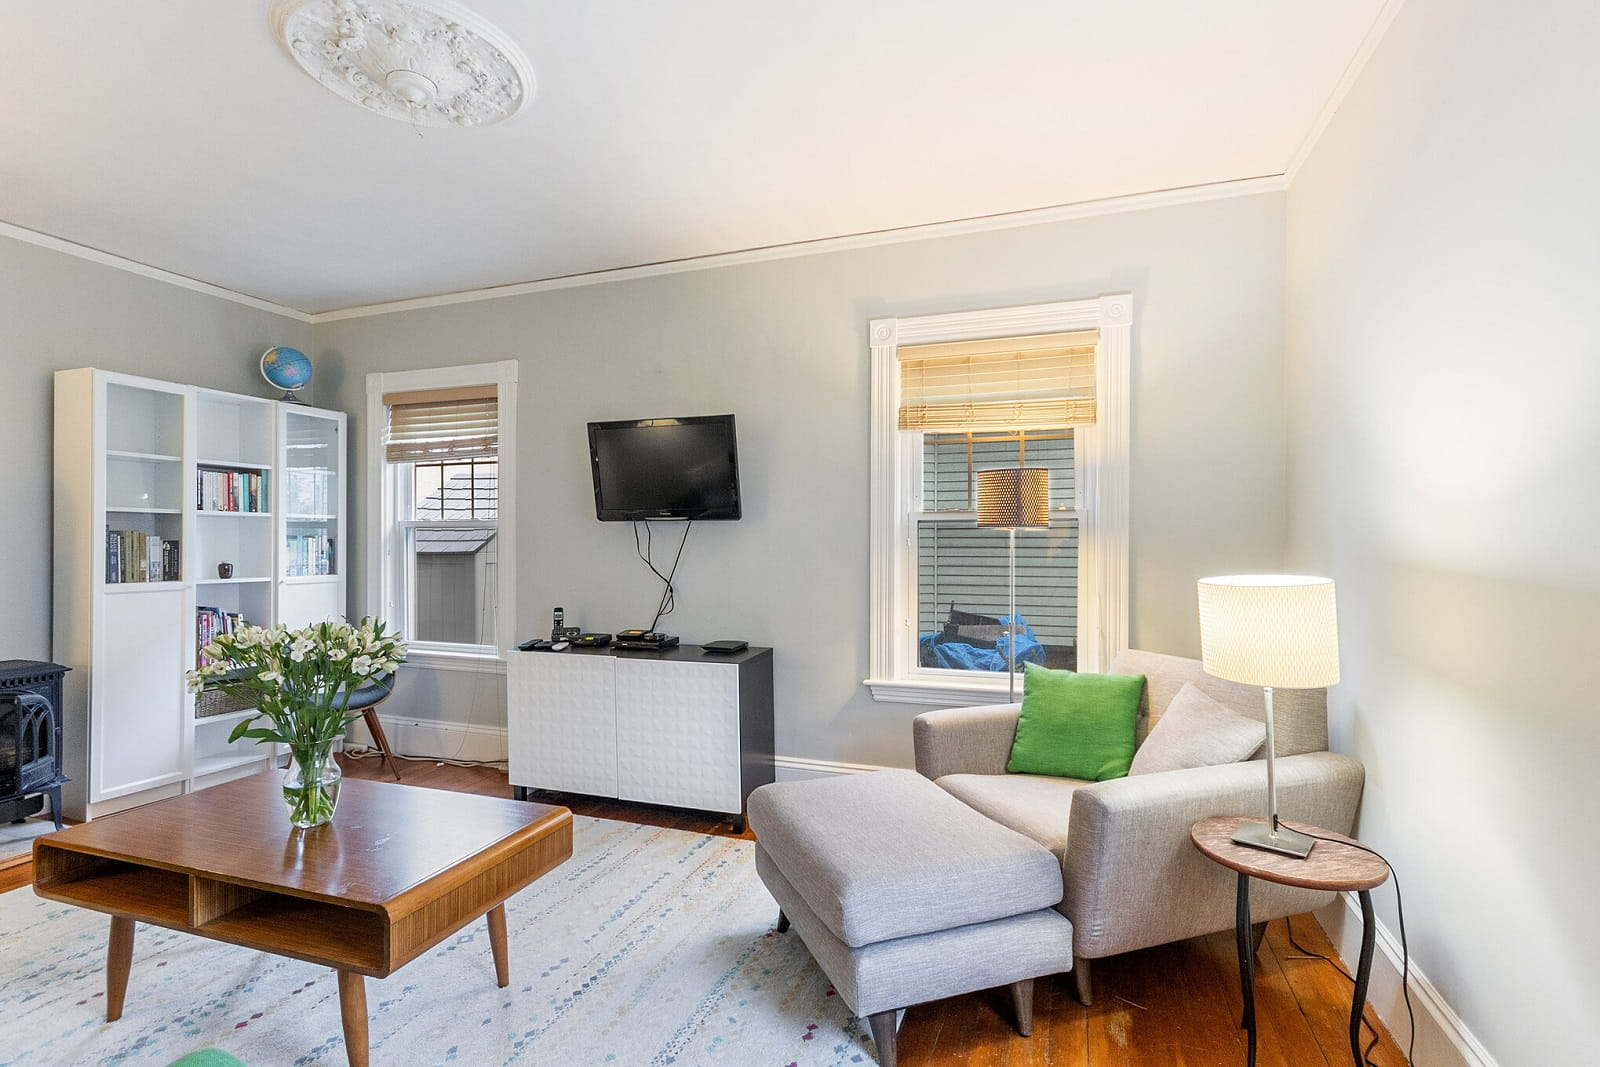 Real Estate Photography in Cambridge - MA - USA - Living Area View